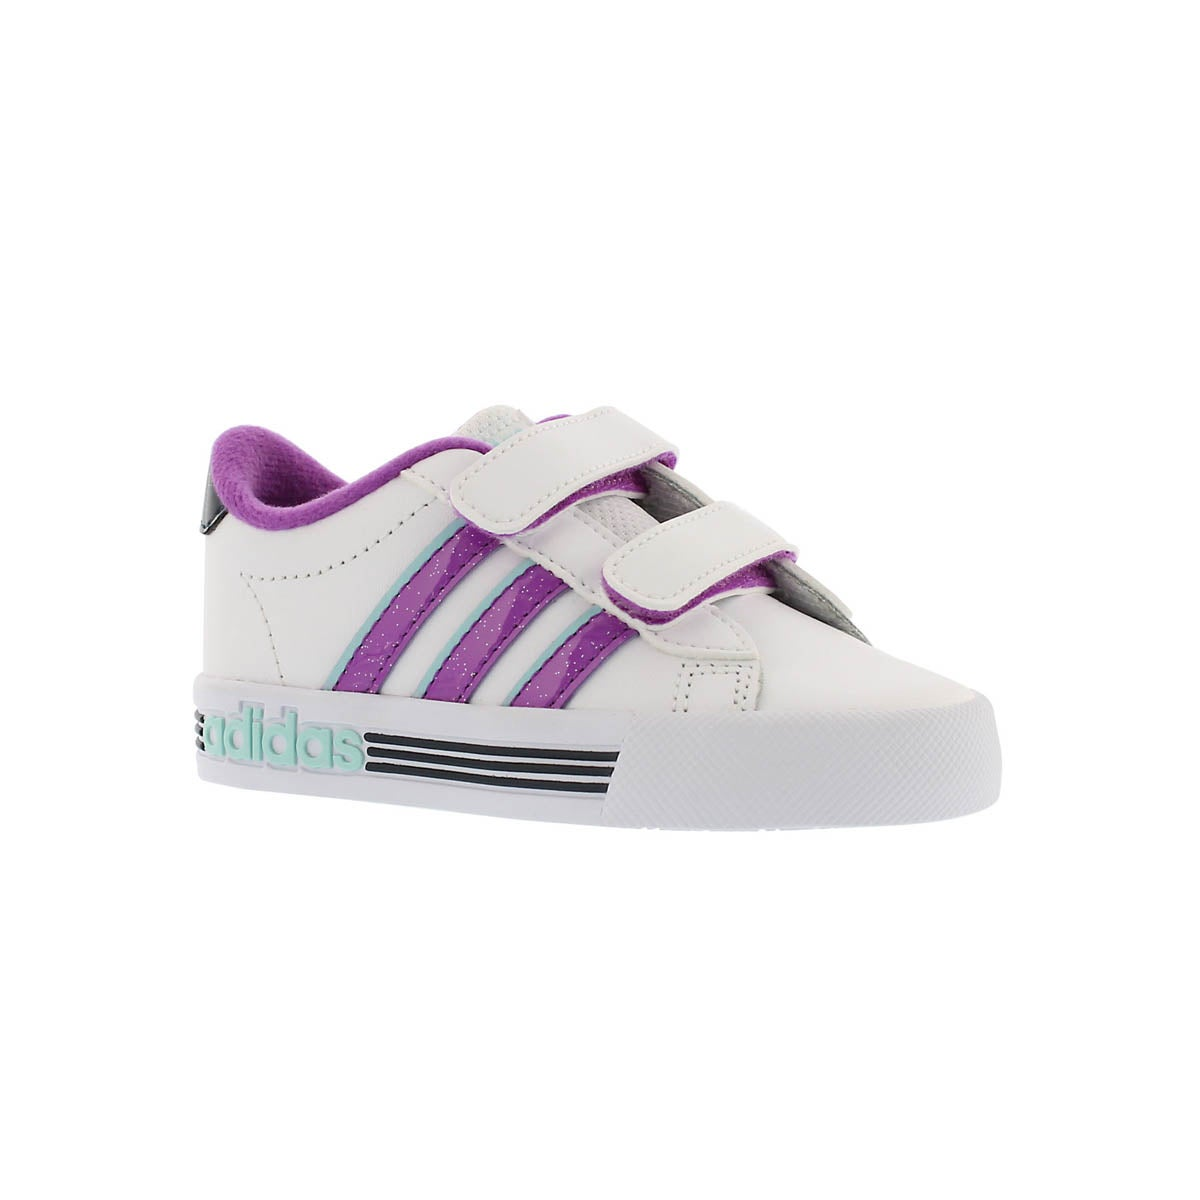 Infants' DAILY TEAM white/purple sneakers